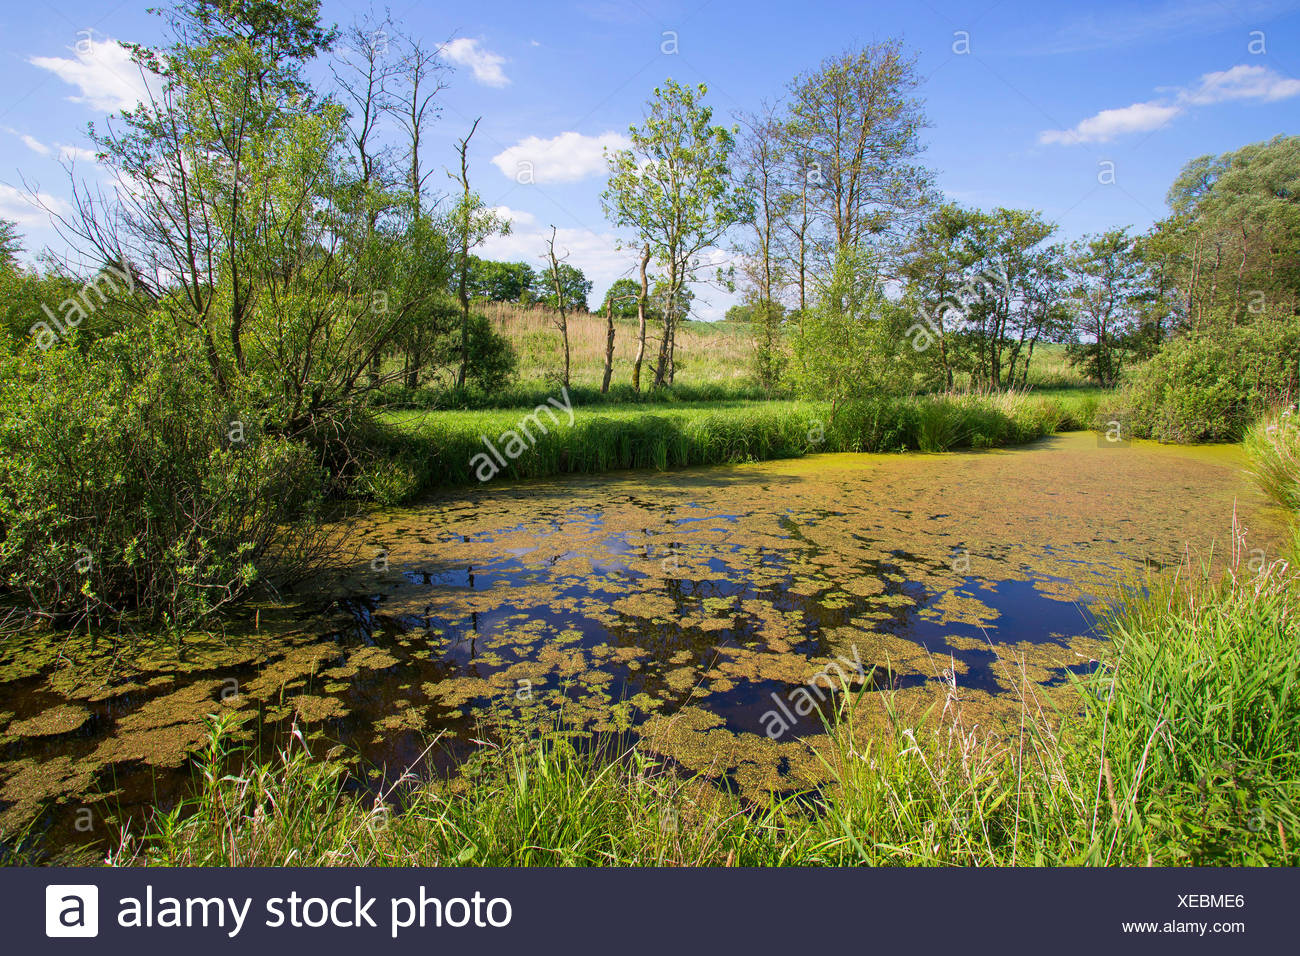 pond in summer, Germany, Schleswig-Holstein - Stock Image